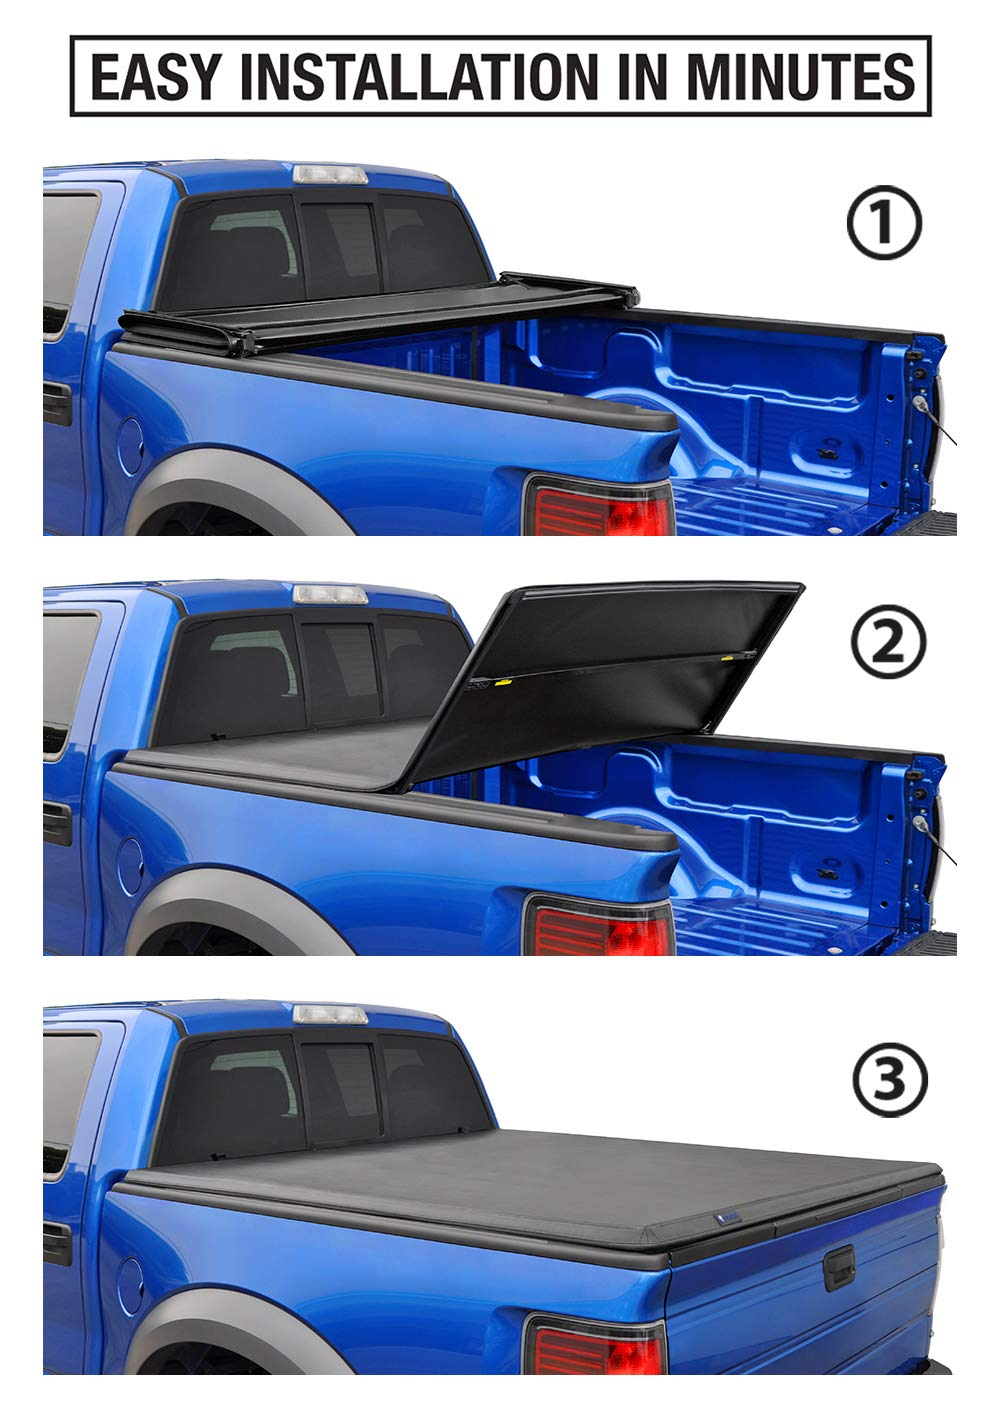 Tyger Auto T3 Tri-Fold Truck Bed Tonneau Cover TG-BC3C1003 Works with 2007-2013 Chevy Silverado//GMC Sierra 1500 Excl. 2007 Classic Fleetside 5.8 Bed